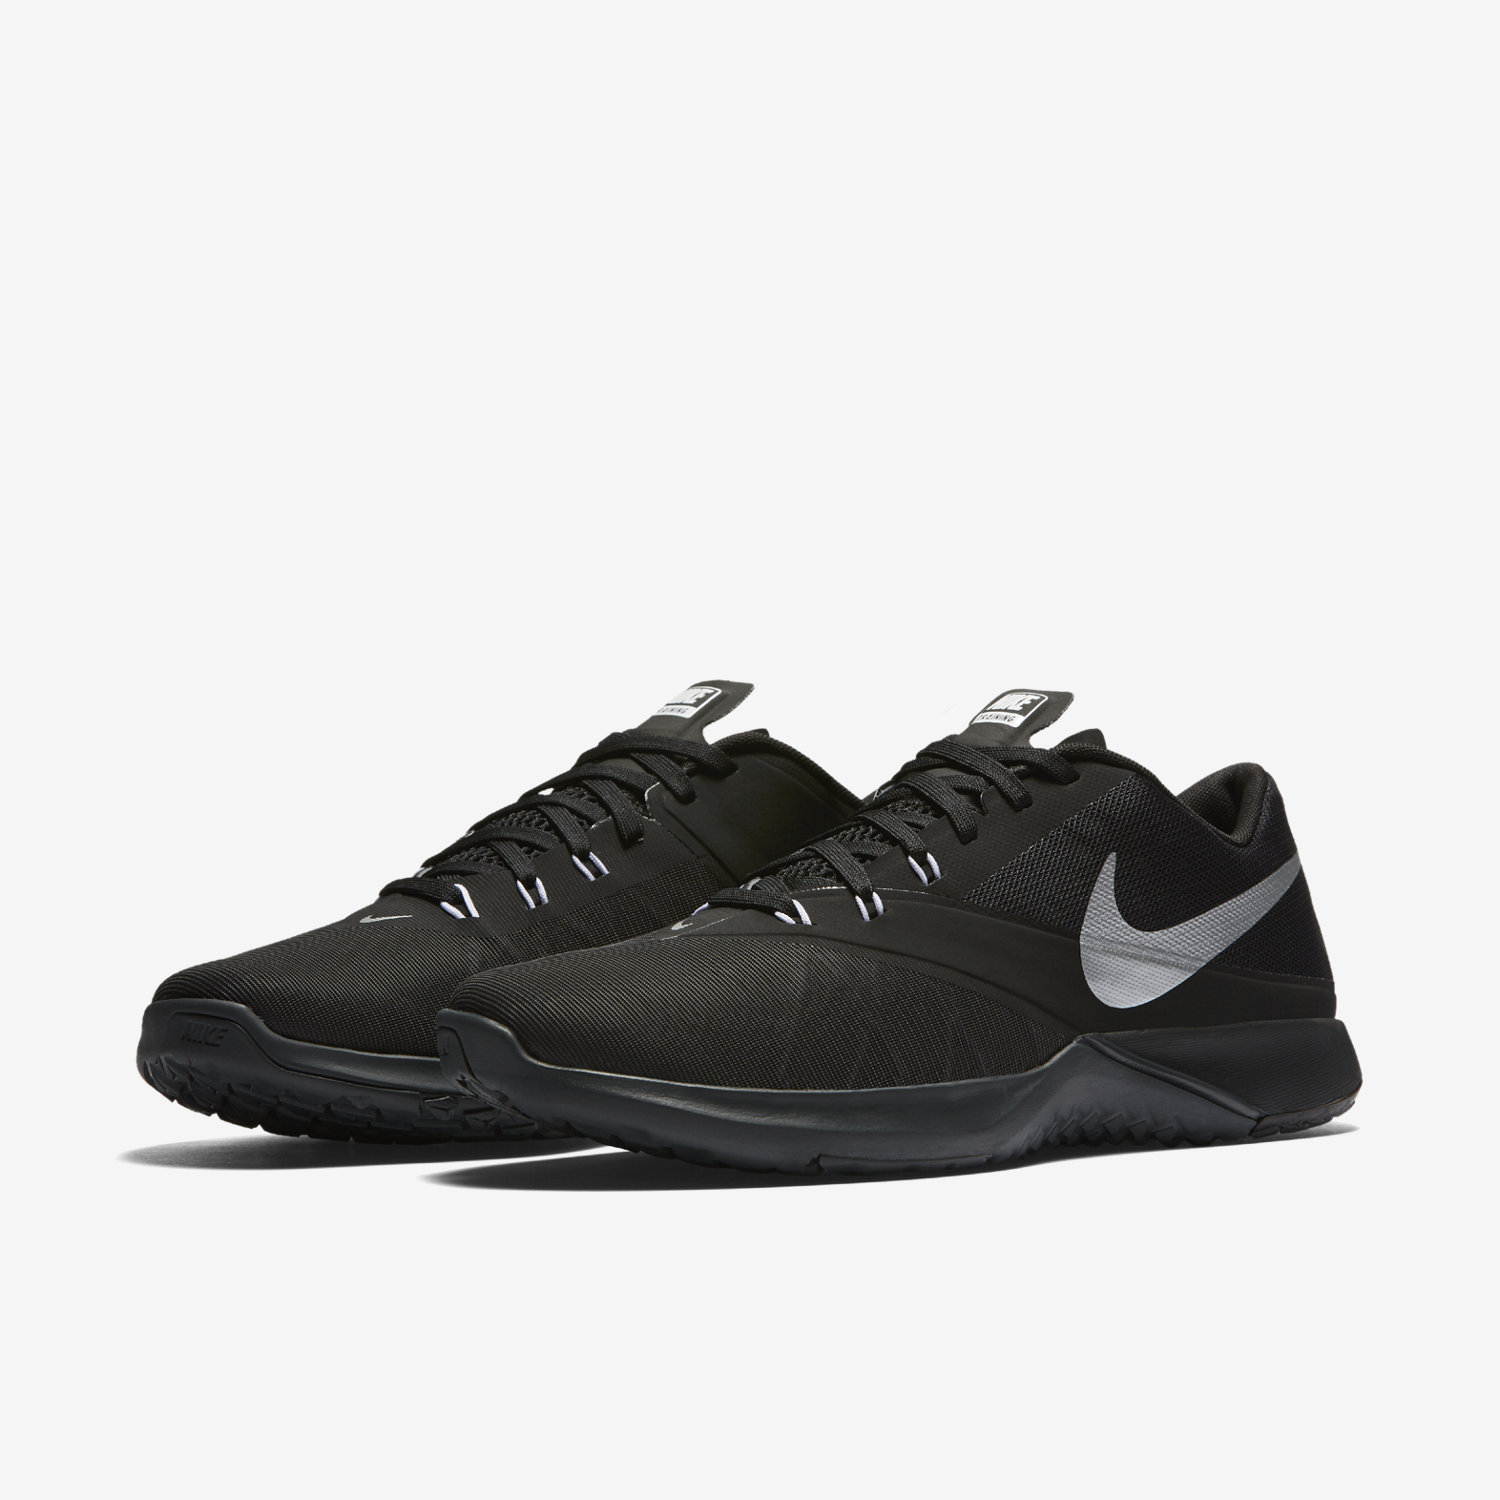 Cheap Nike free 5.0 flyknit hybrid id ratings Cheap Nike free 5.0 flyknit black and white